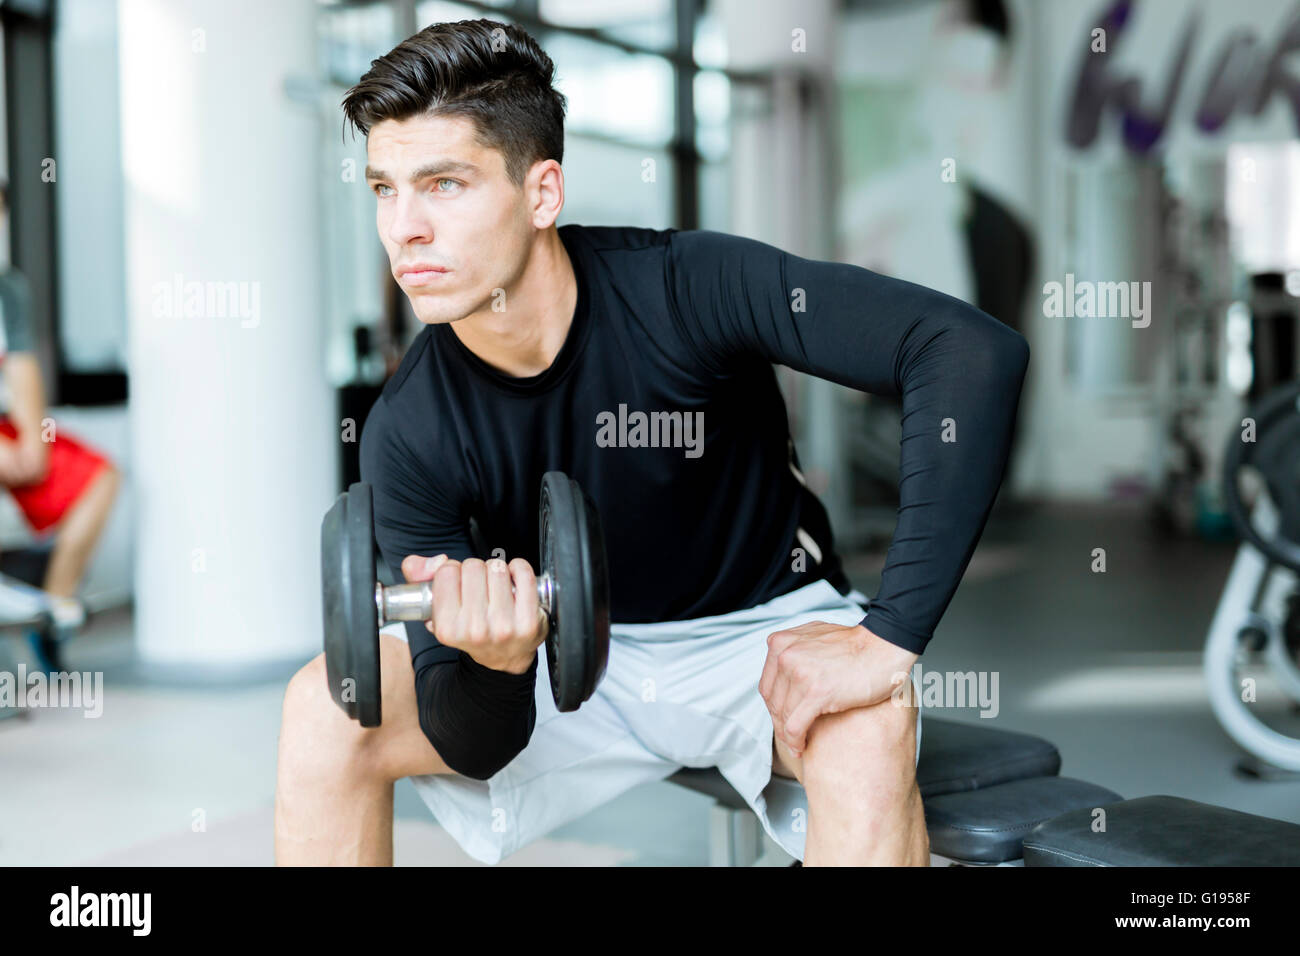 Young handsome man training in a fitness center - Stock Image